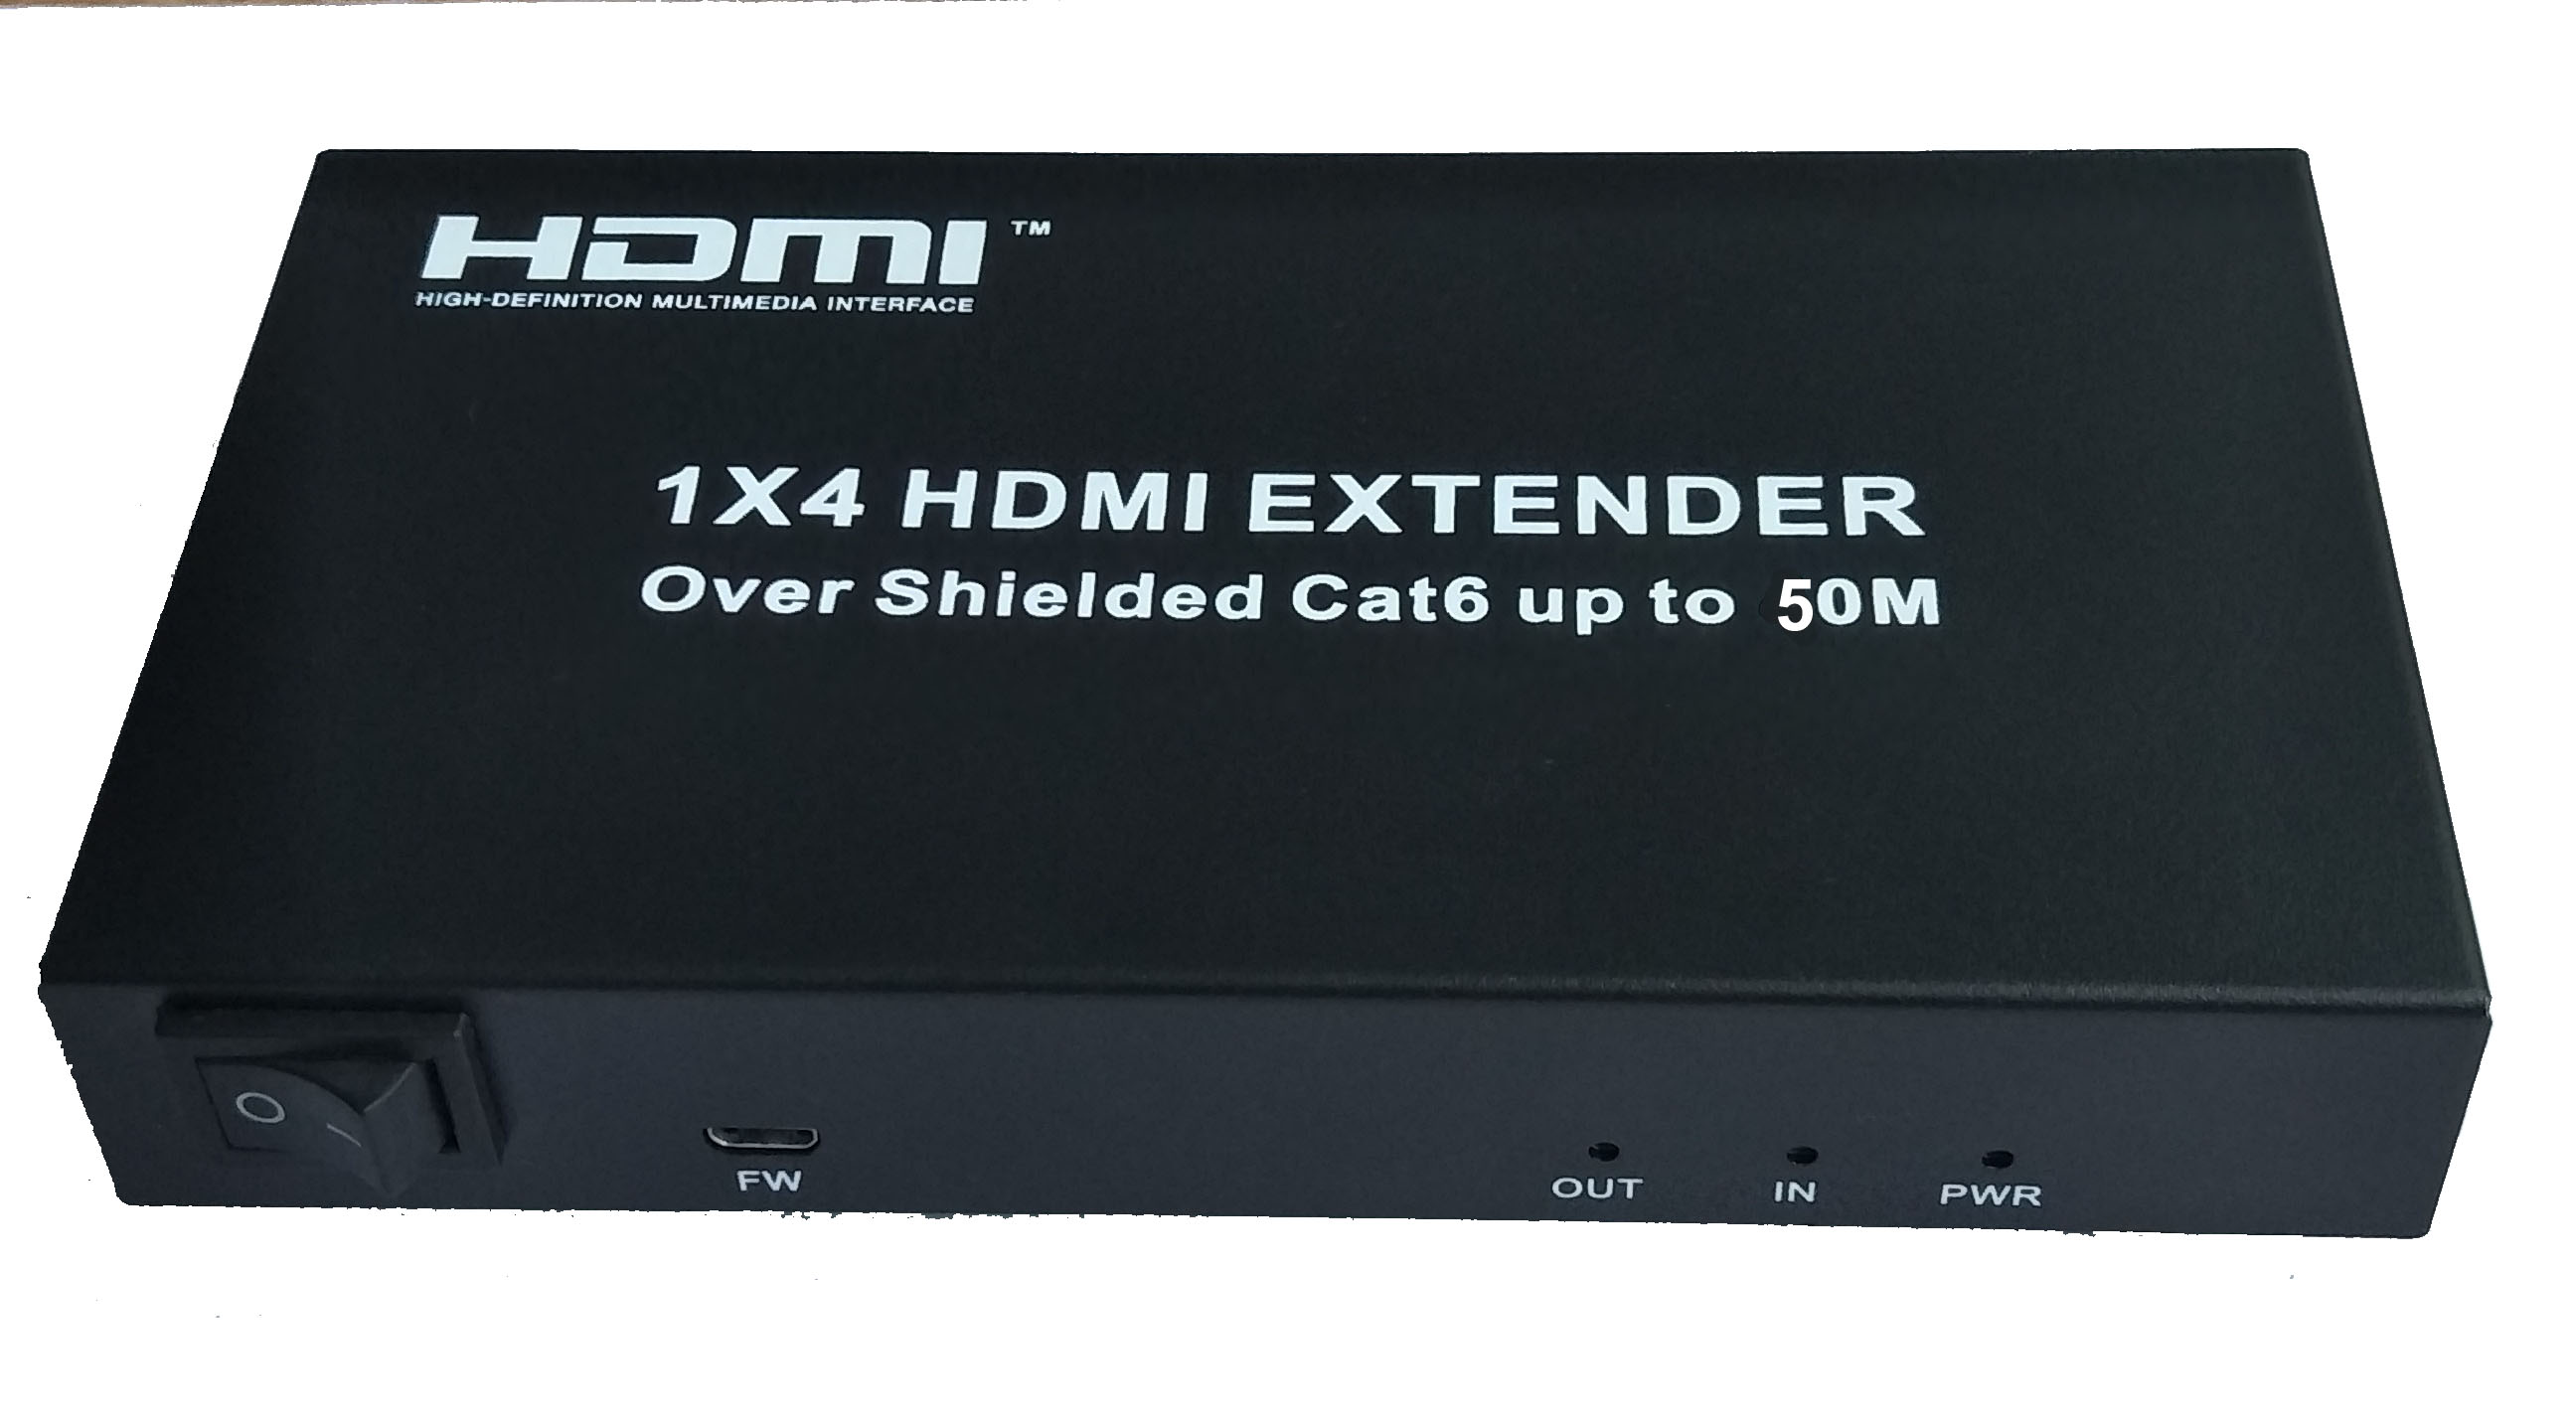 HDMI Extender 1x4 over UTP cable 50m